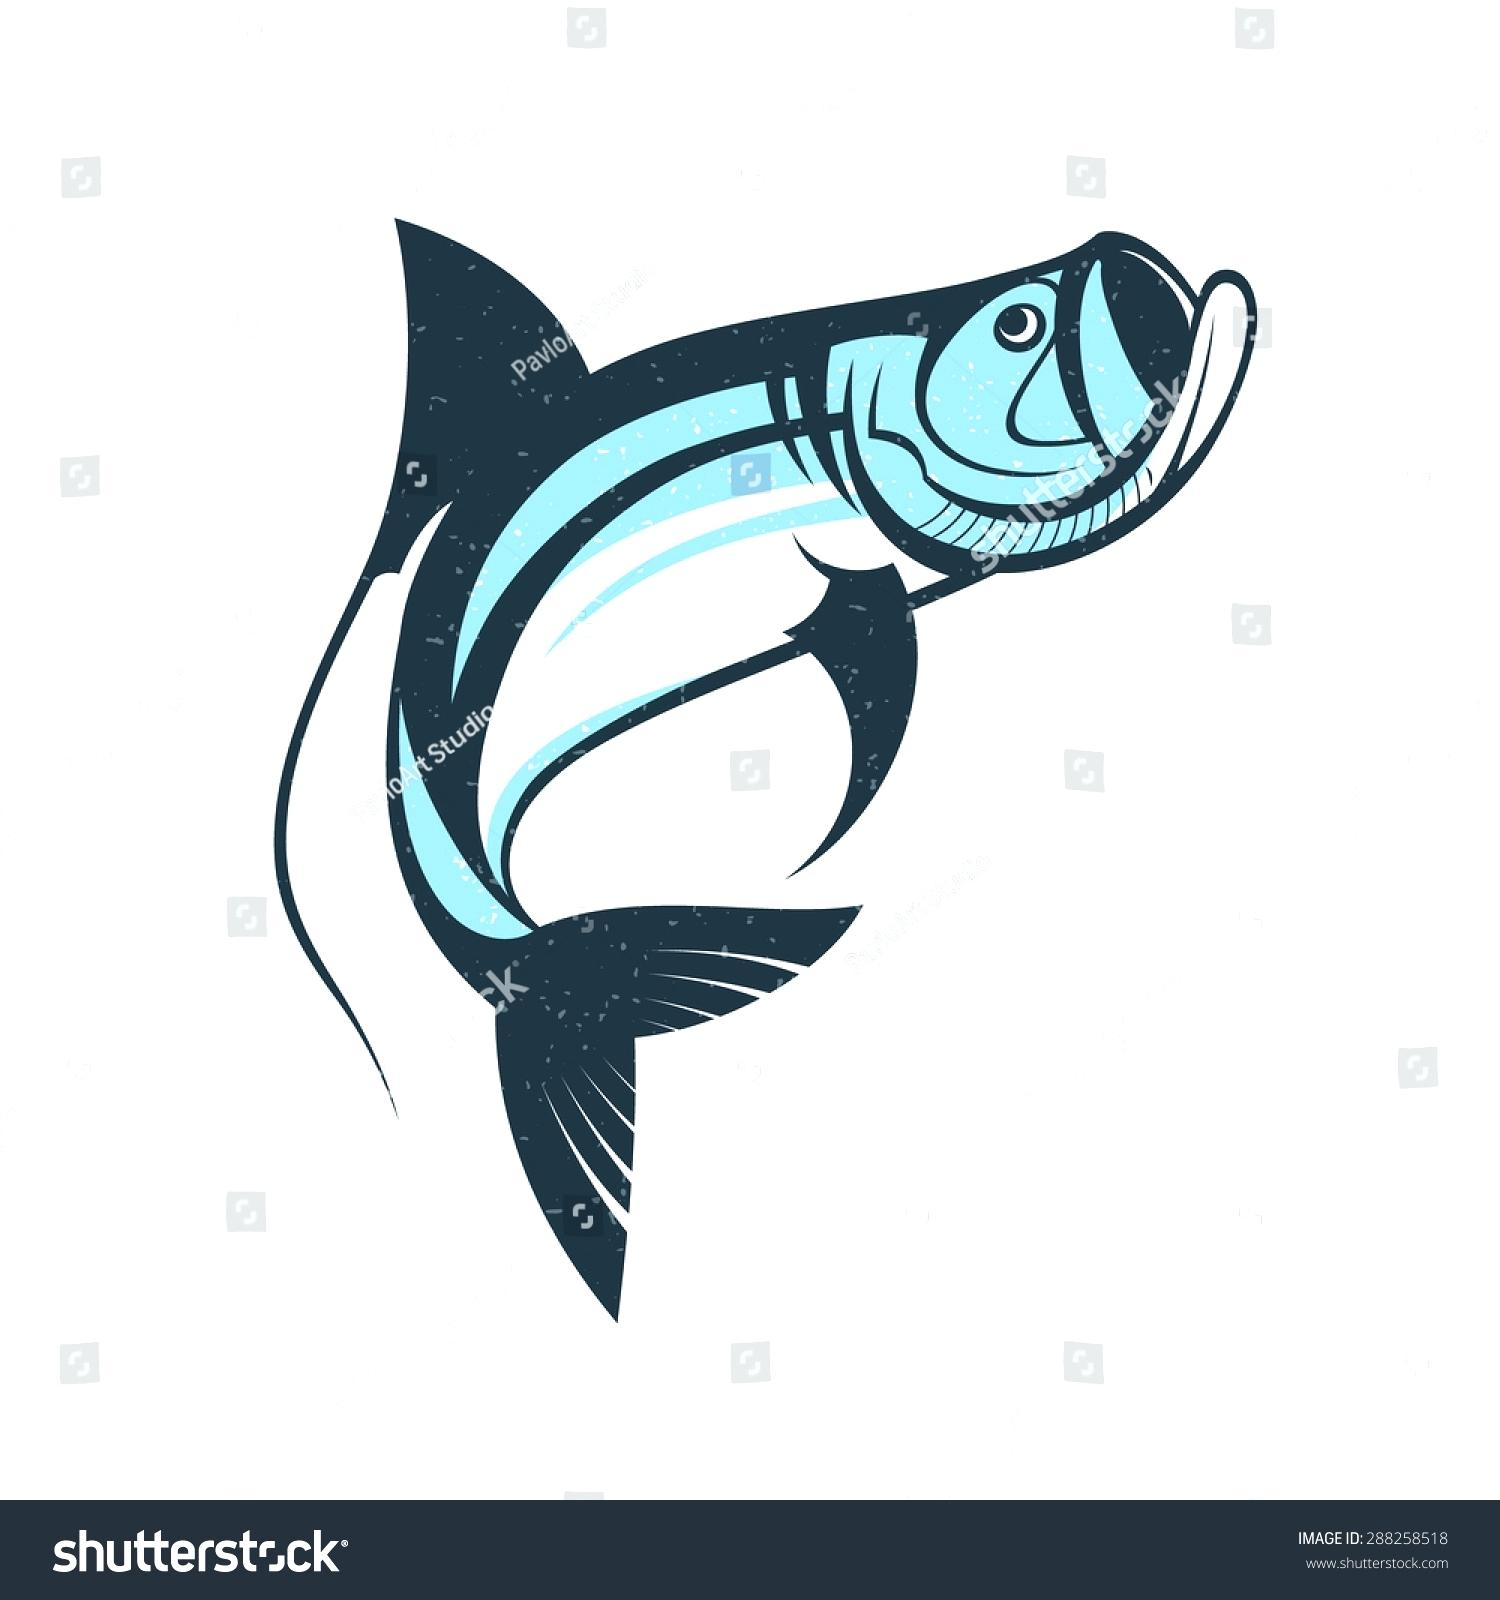 Shark Drawing Template at GetDrawings.com | Free for personal use ...